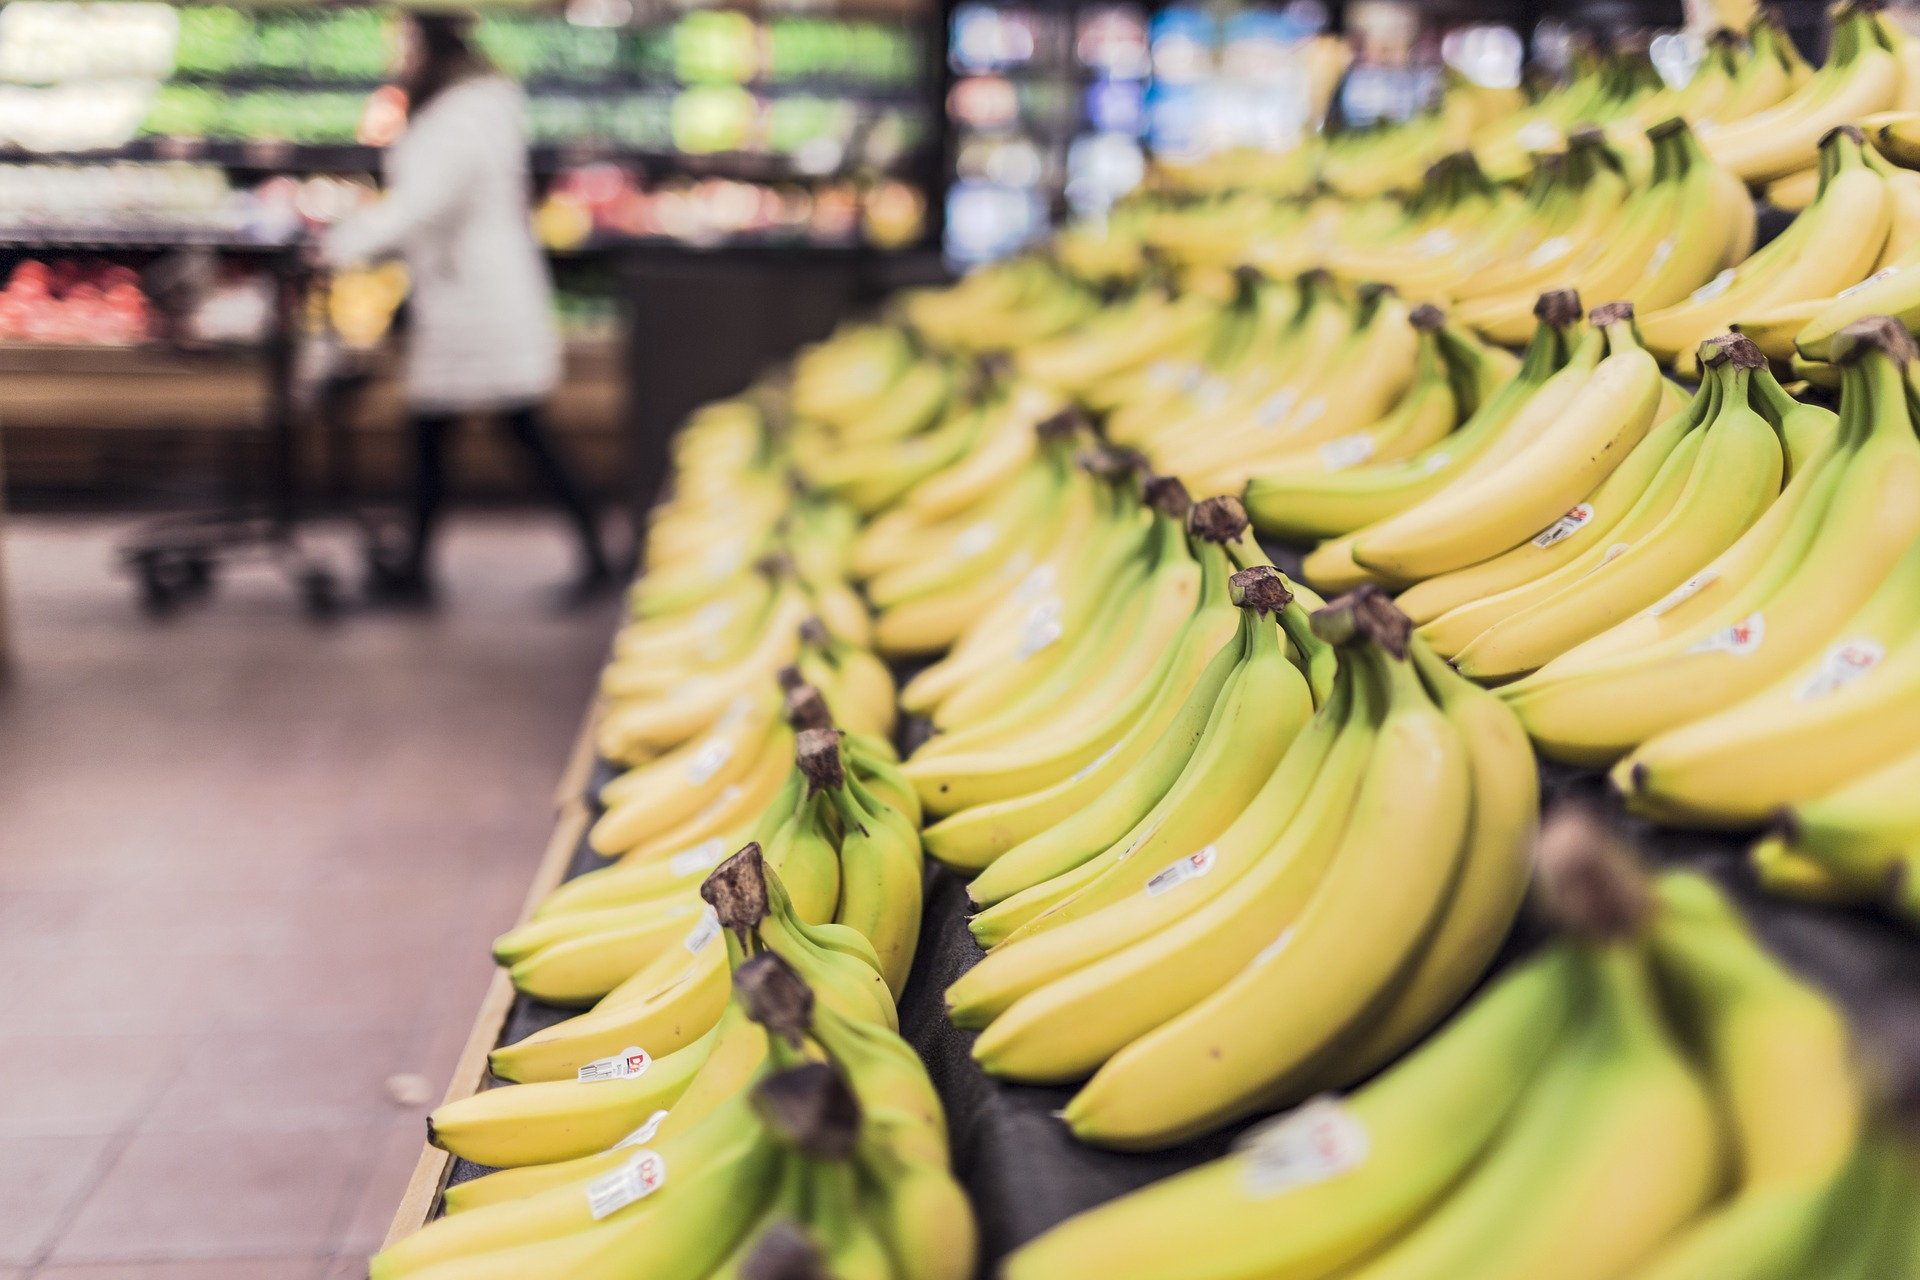 Bananas on a supermarket shelf